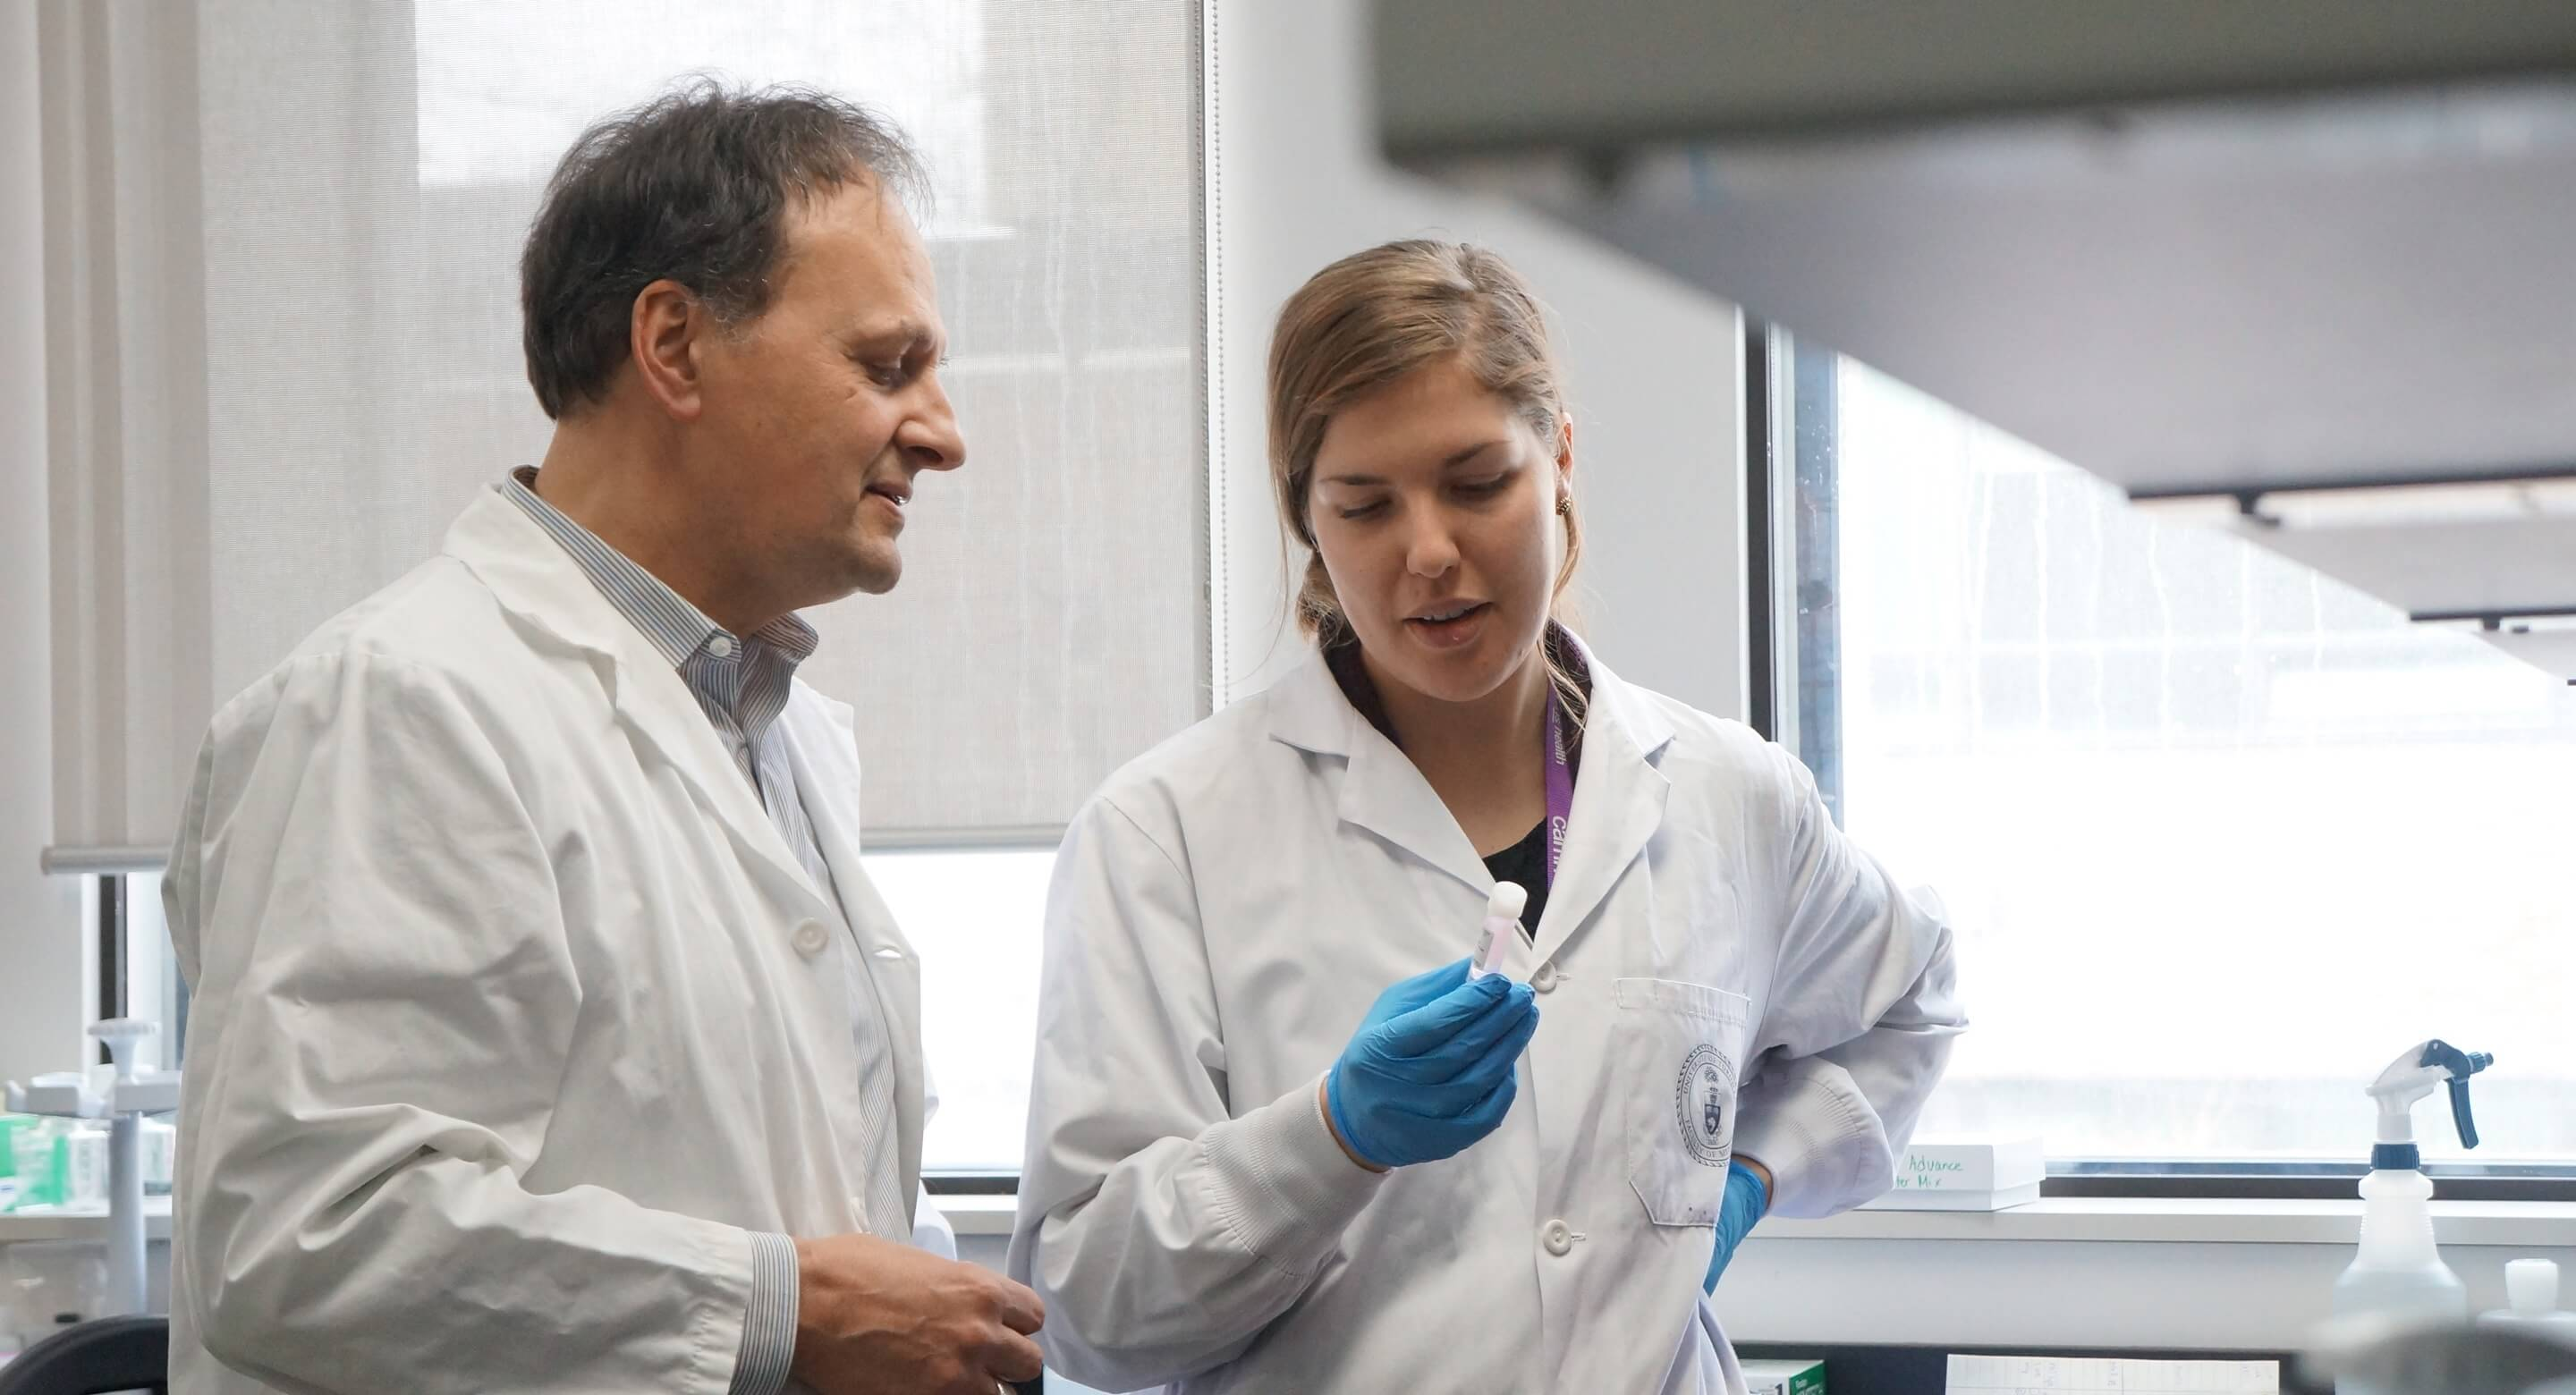 Dr. Etienne Sibille in the lab with another researcher